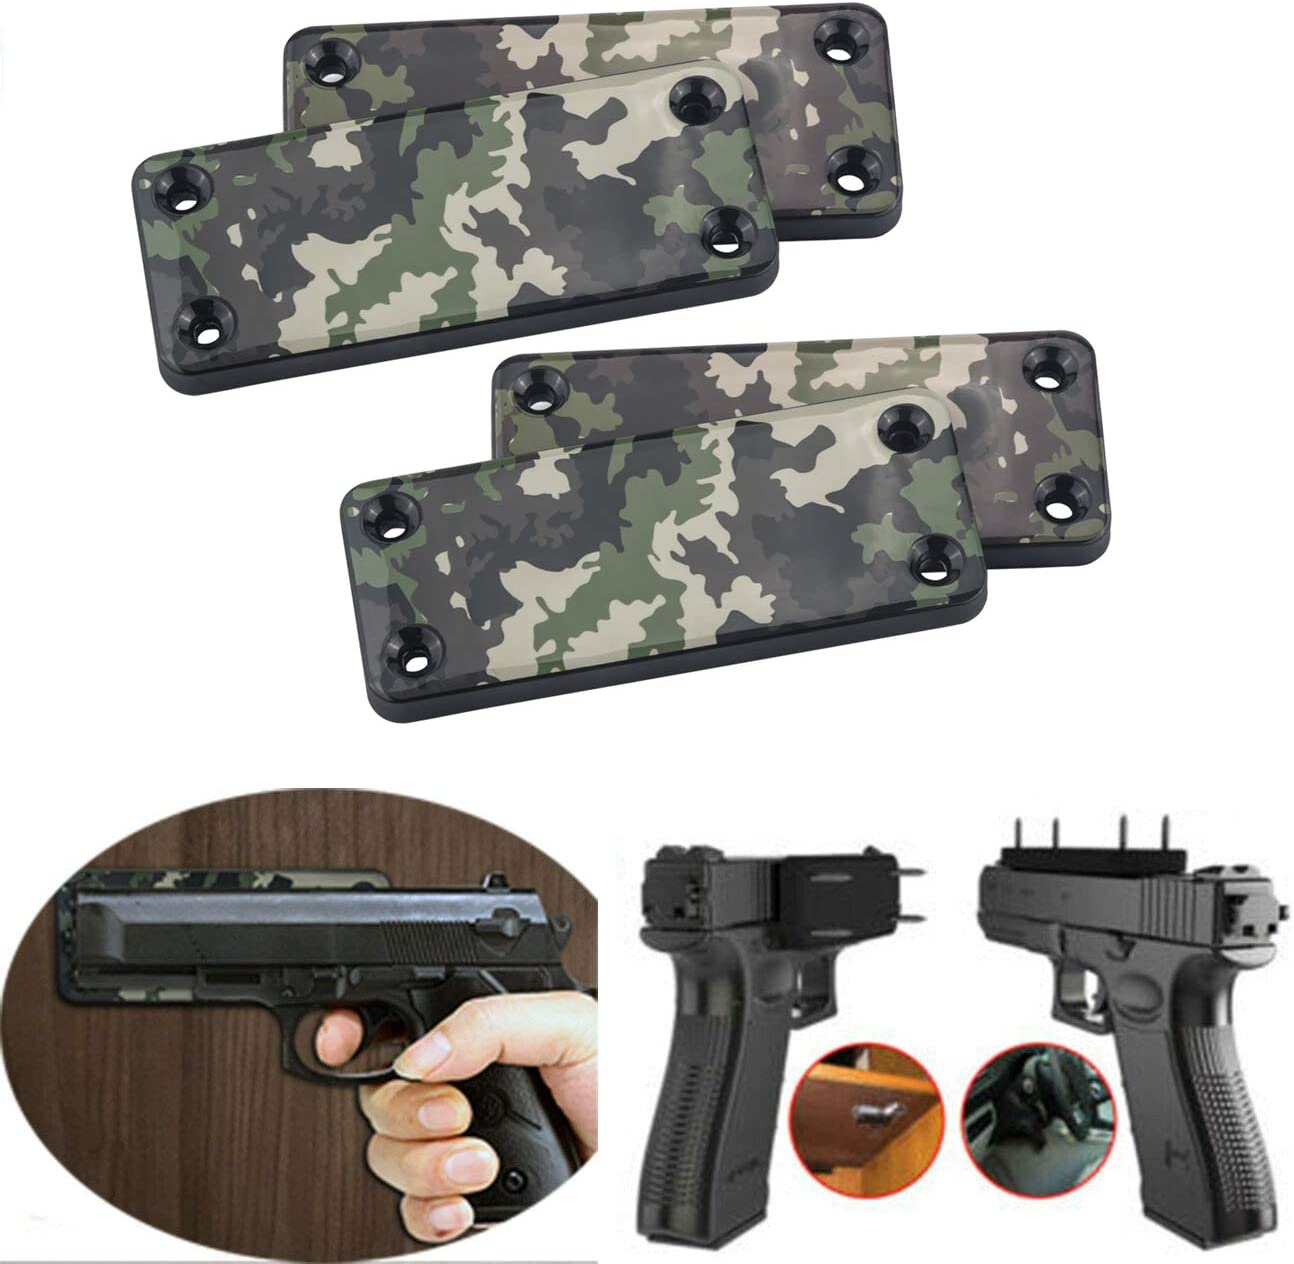 HECLOUD 4 Pcs Magnet Gun Holder 50lbs Wall Special price for a limited time Fees free Concealed Mount